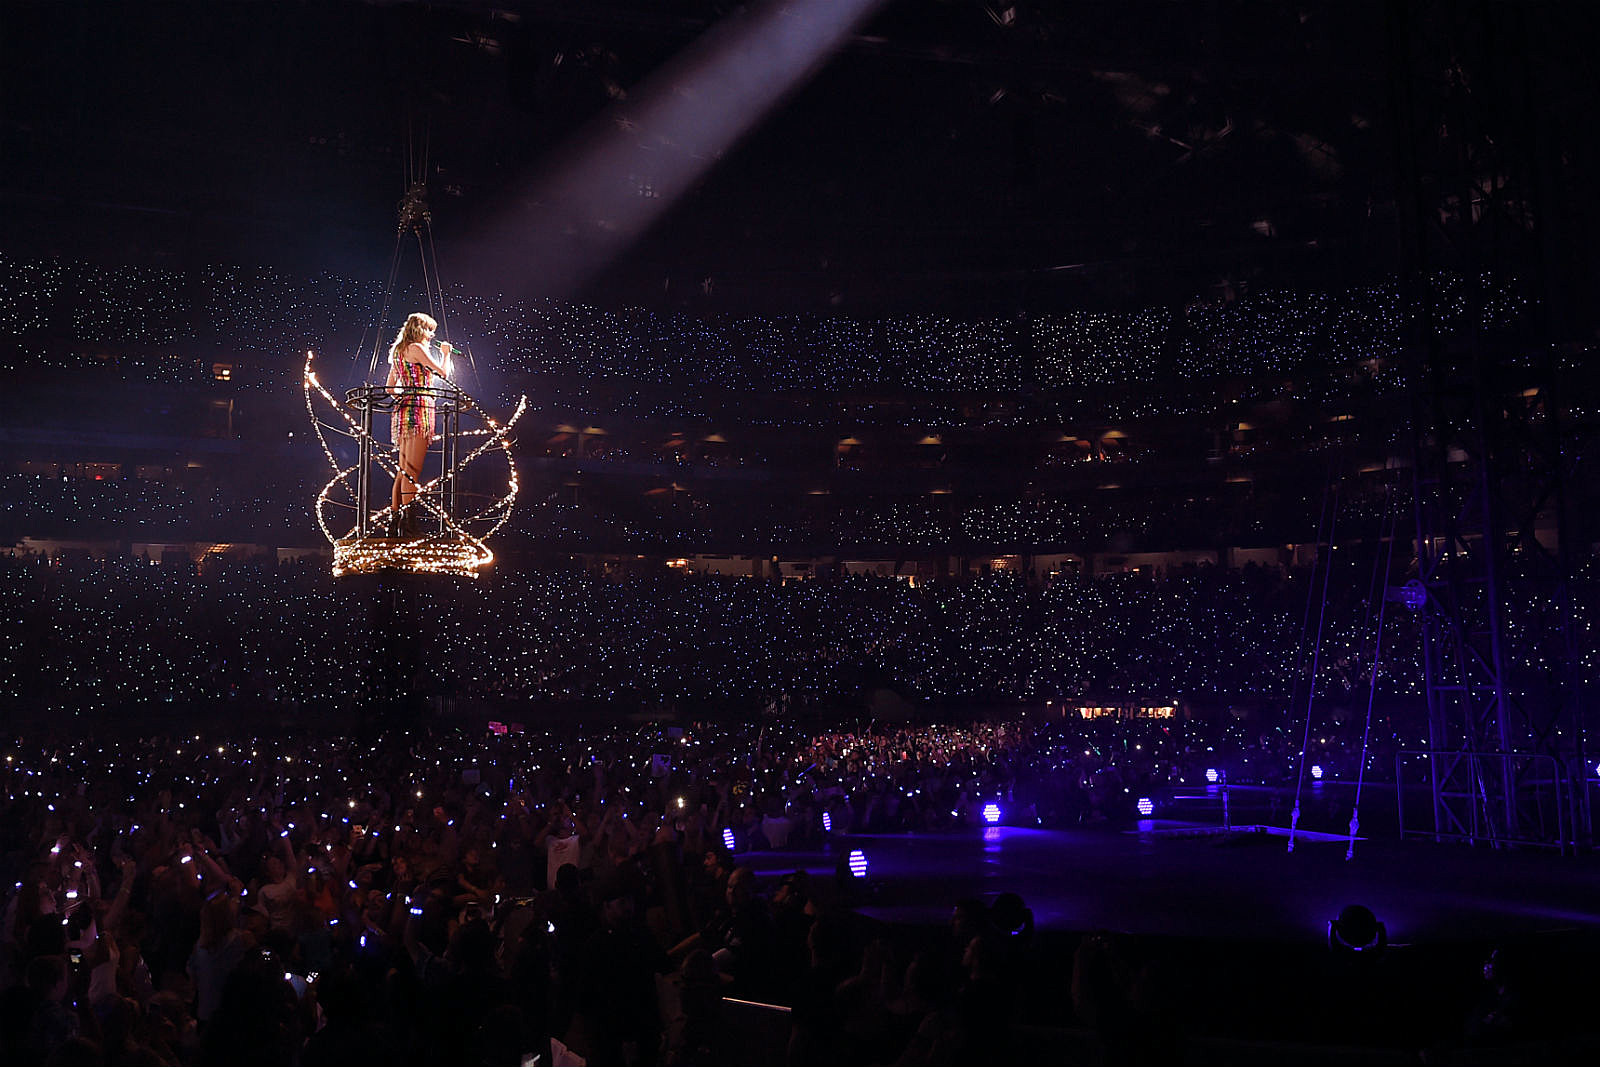 Watch Taylor Swift Gets Stuck Mid Air In Basket During Philadelphia Concert